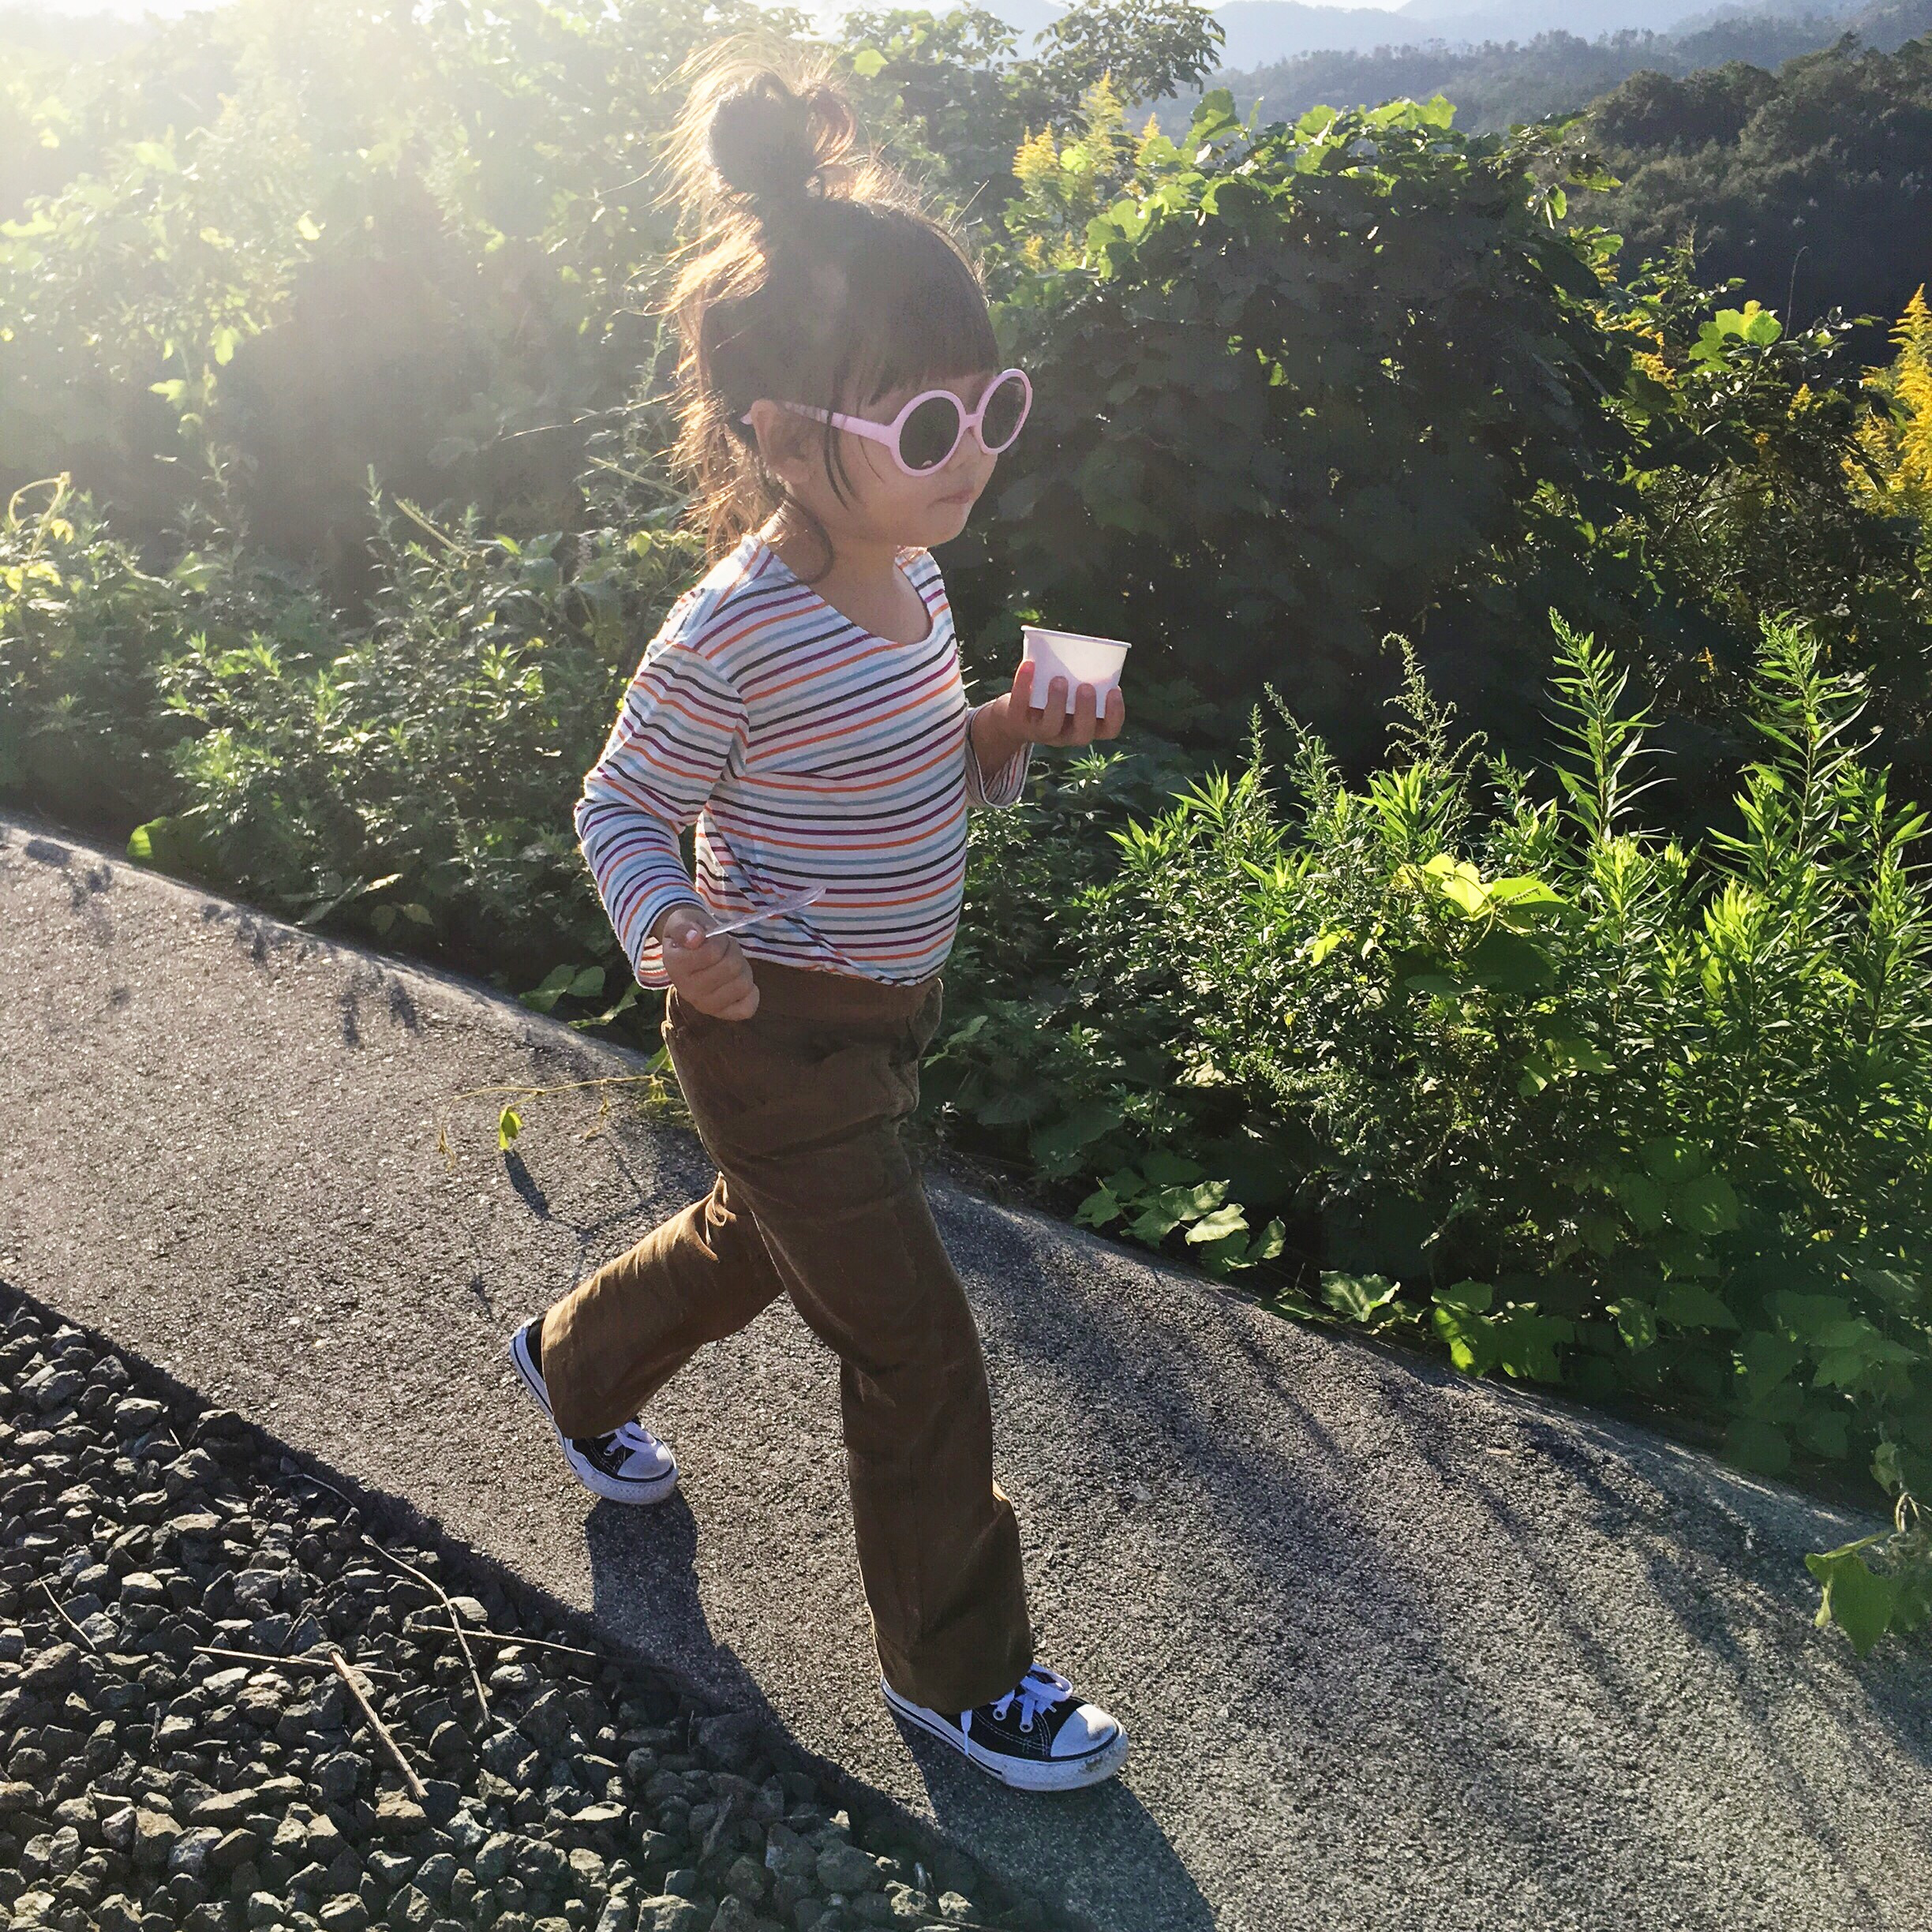 After a day at  FUKUTOMI PARK  in Hiroshima (omg this park is AMAZINGGGGG) : Shirt + Cordoroy pants:  Ultraviolet Kids , Sunnies:  Janie + Jack , Sneakers: Converse